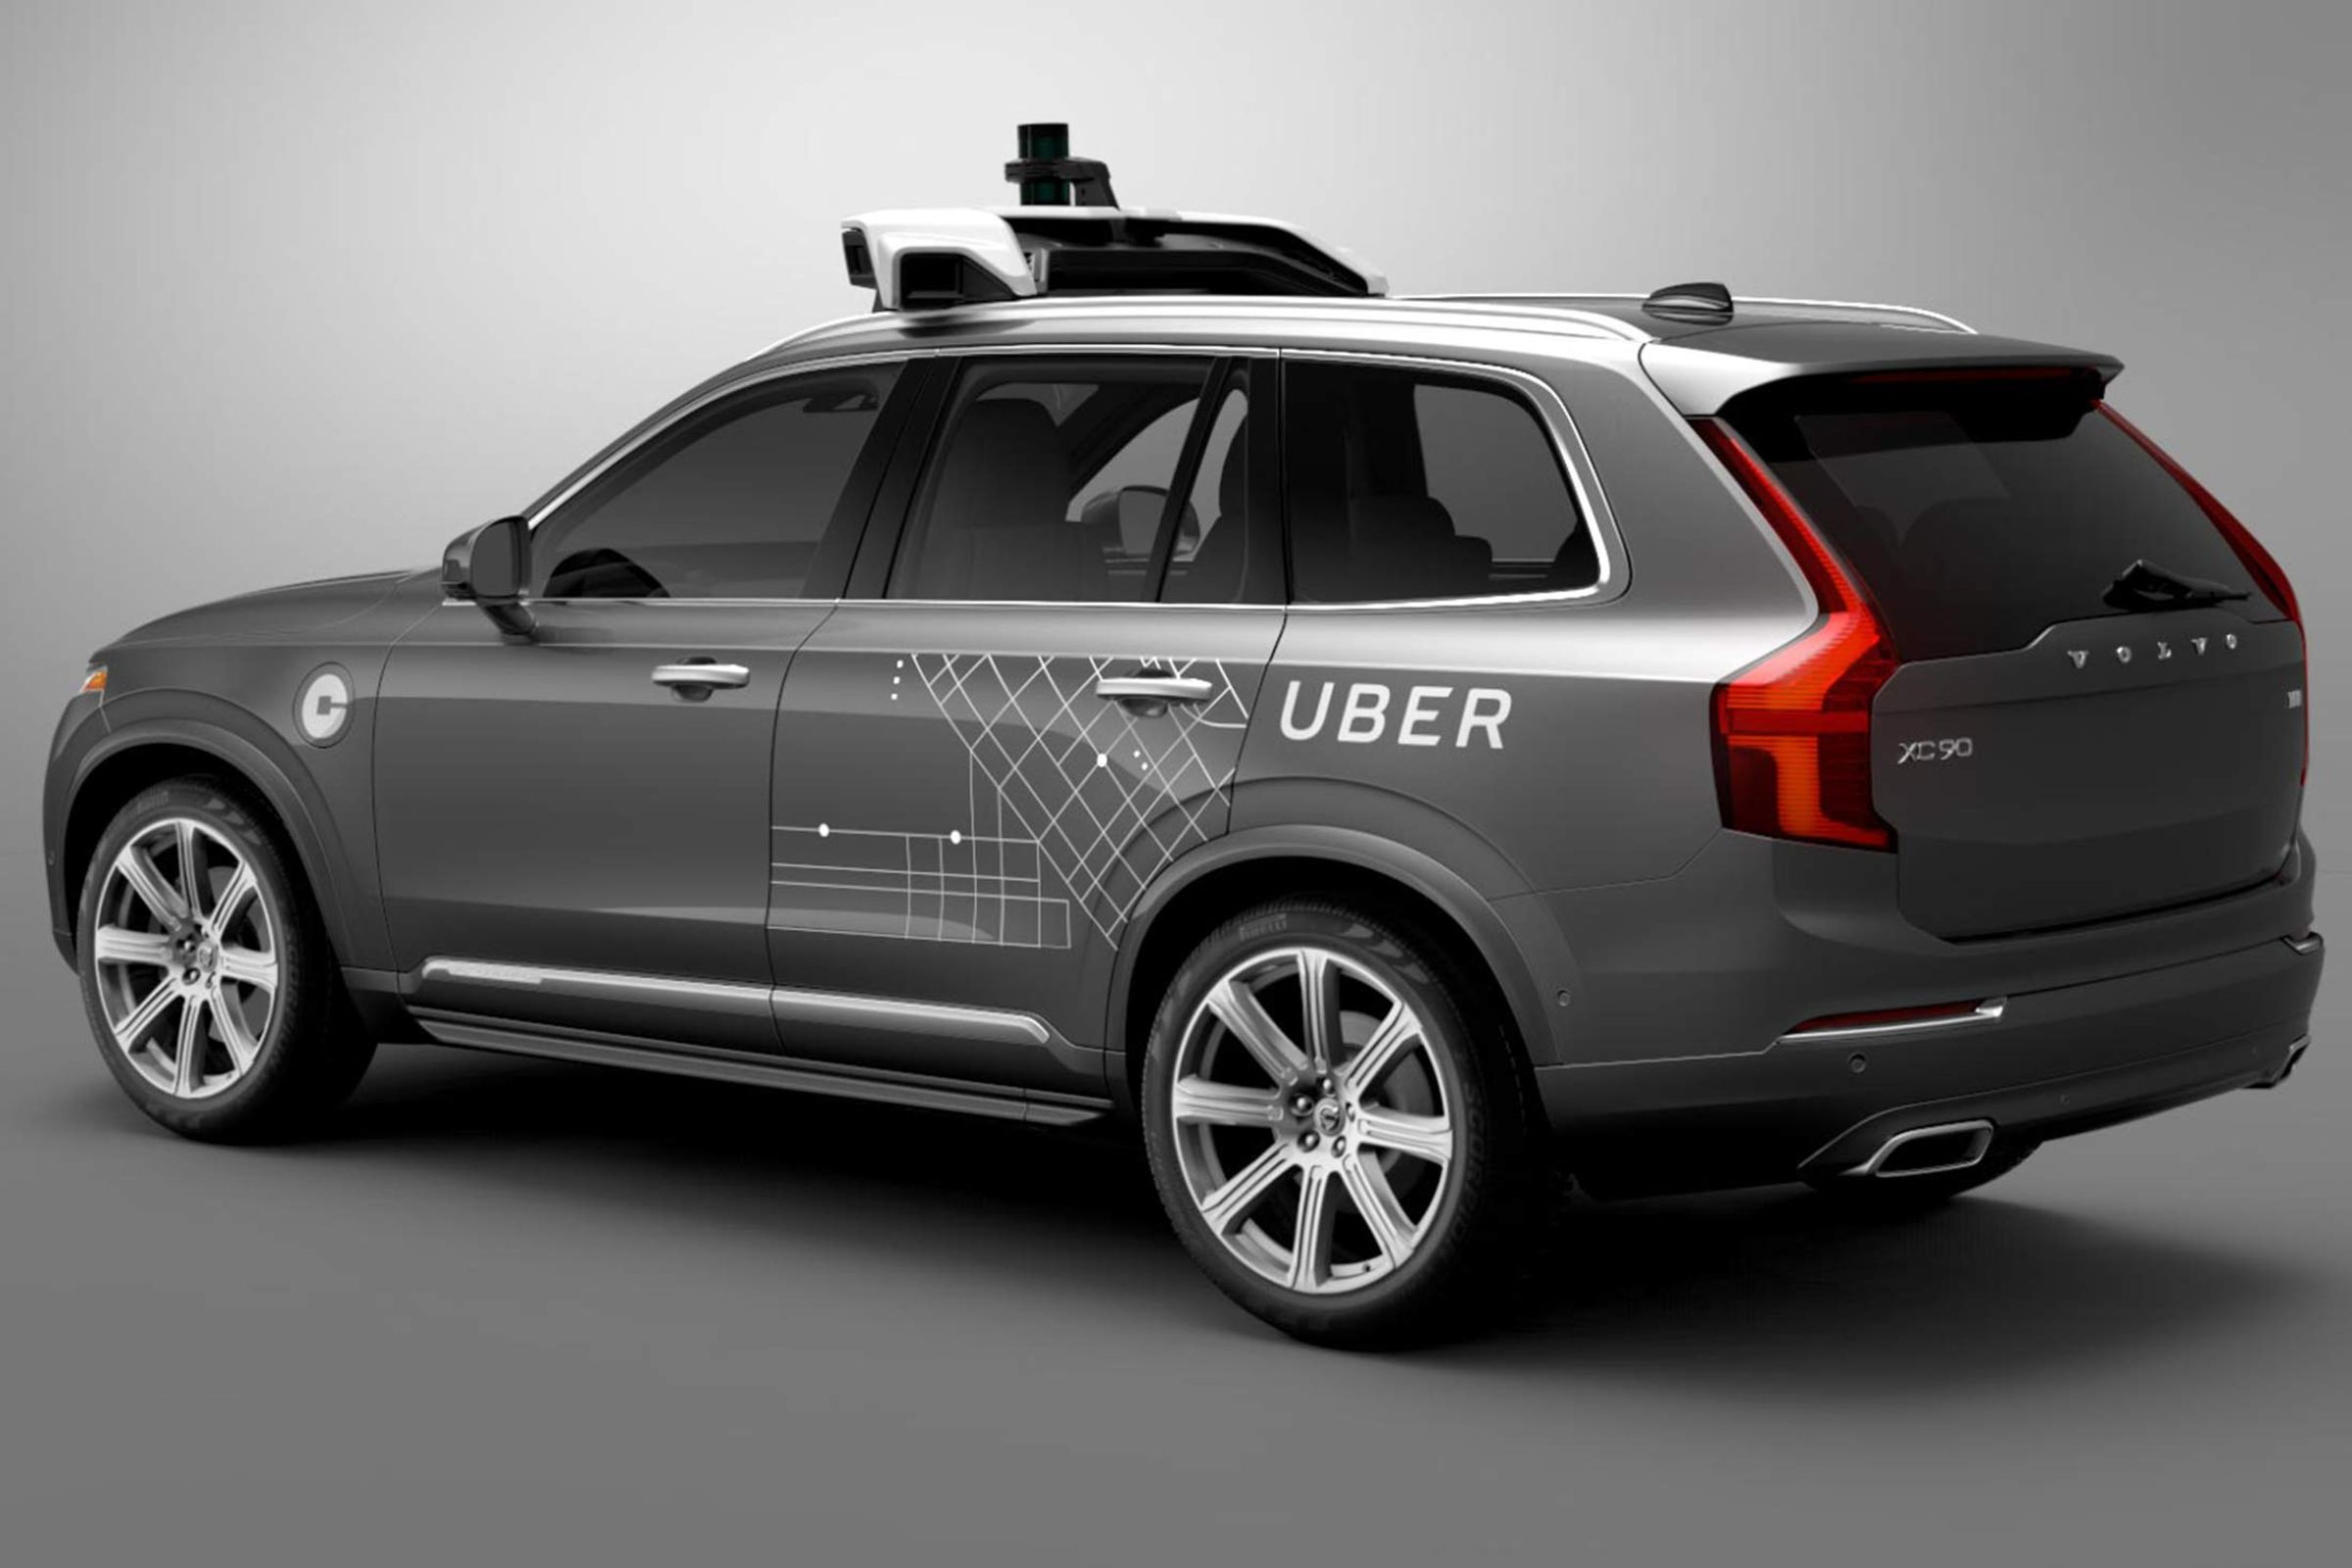 Uber sells of self-driving car project